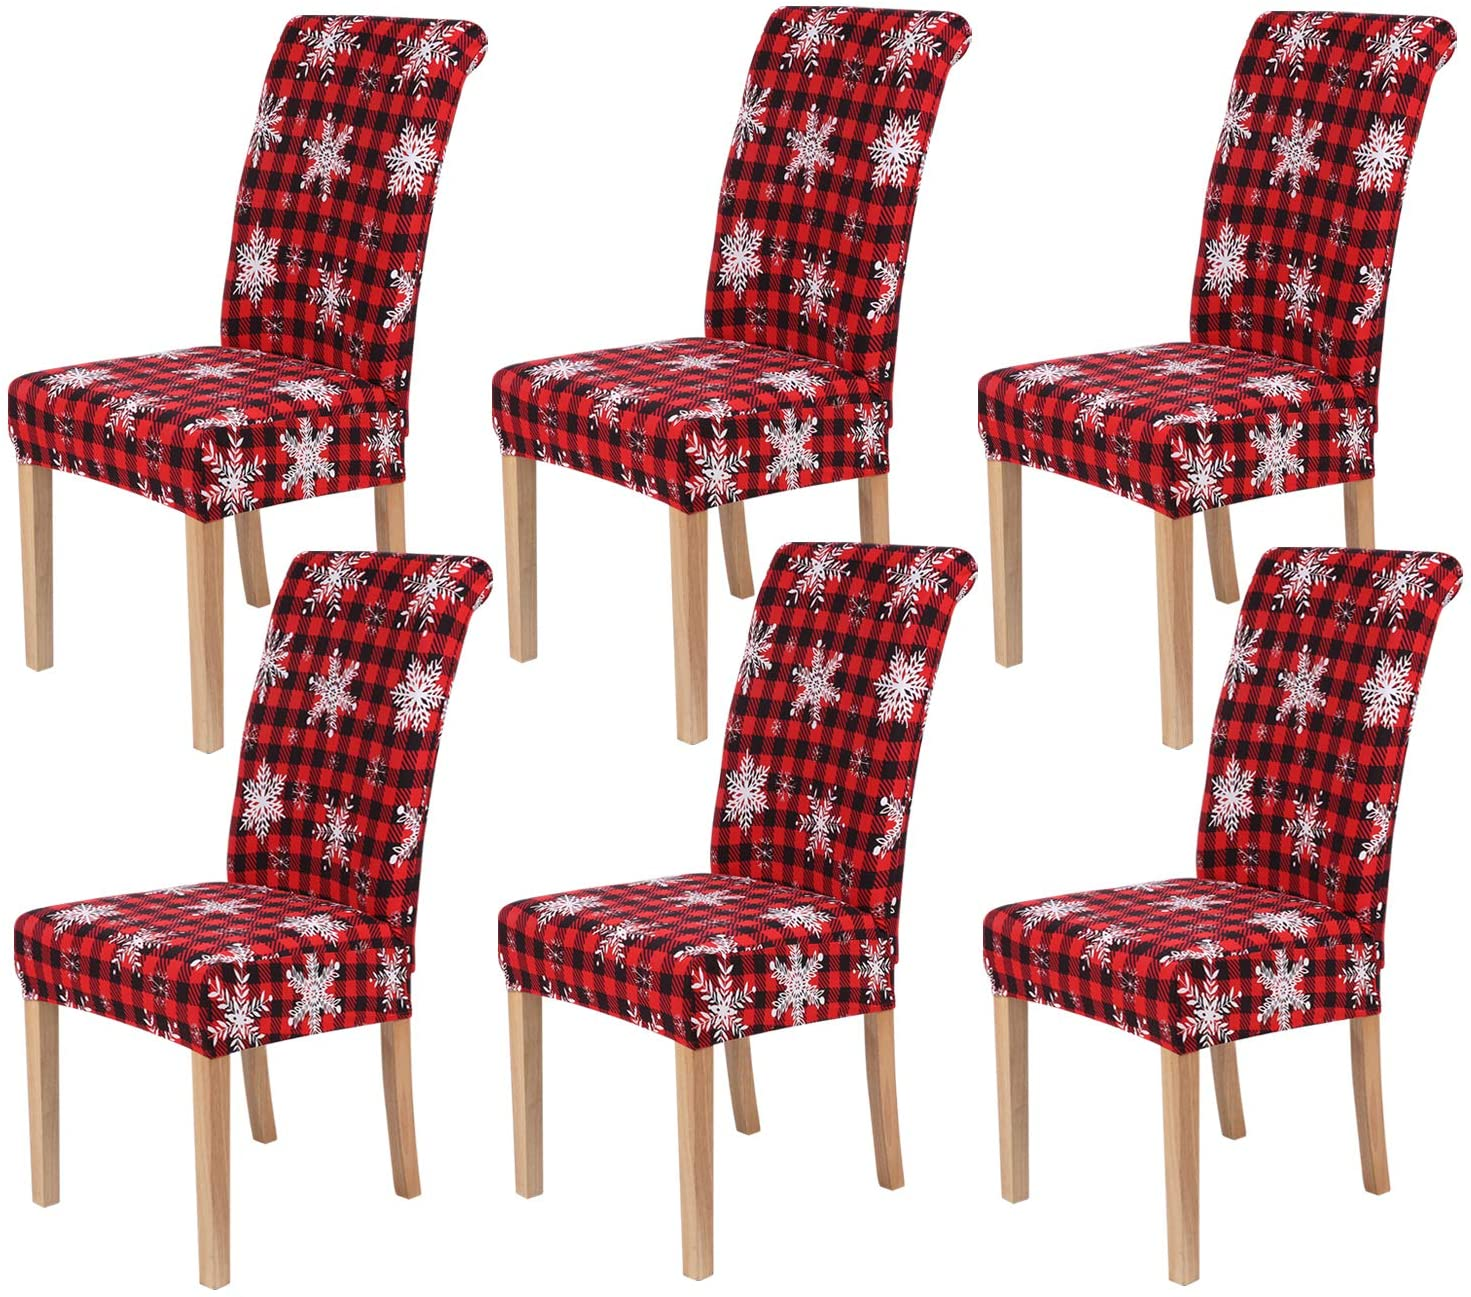 smiry Stretch Printed Dining Chair Covers, Spandex Removable Washable Dining Chair Protector Slipcovers for Home, Kitchen, Party, Restaurant - Set of 6, Retro Plaid